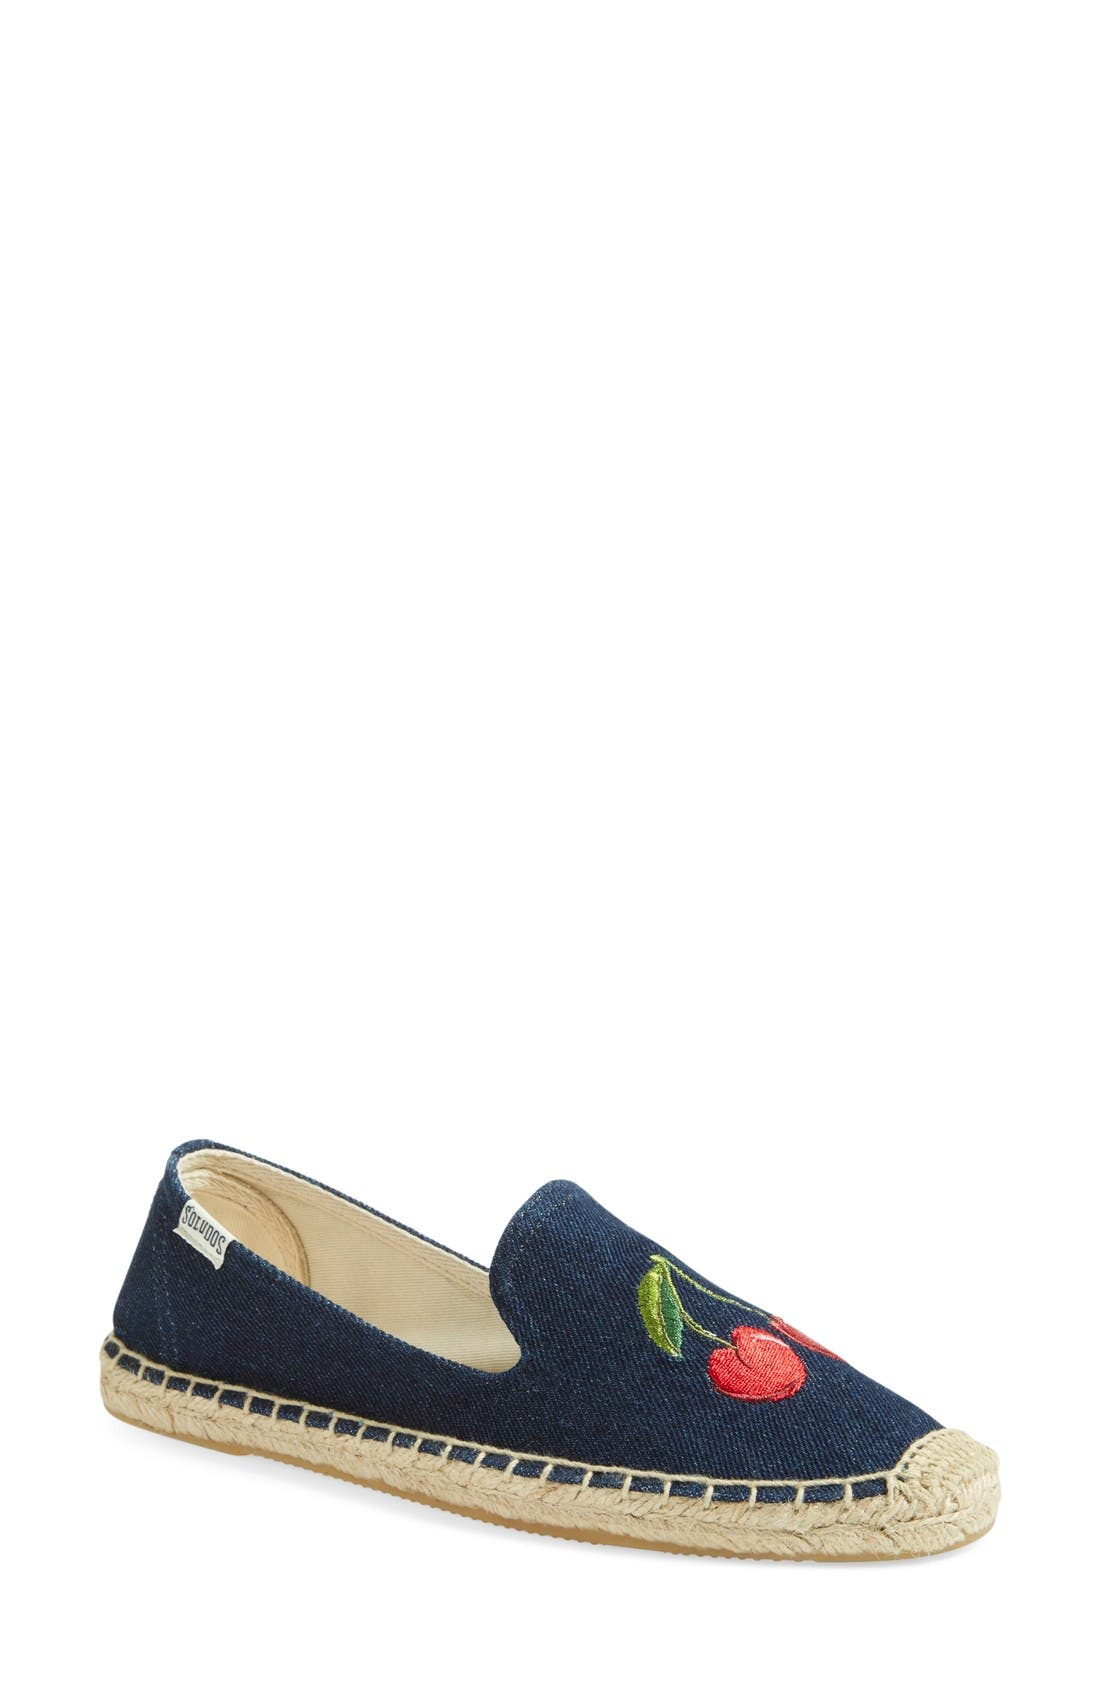 Alternate Image 2  - Soludos 'Cherries' Embroidered Espadrille Slip-On (Women)